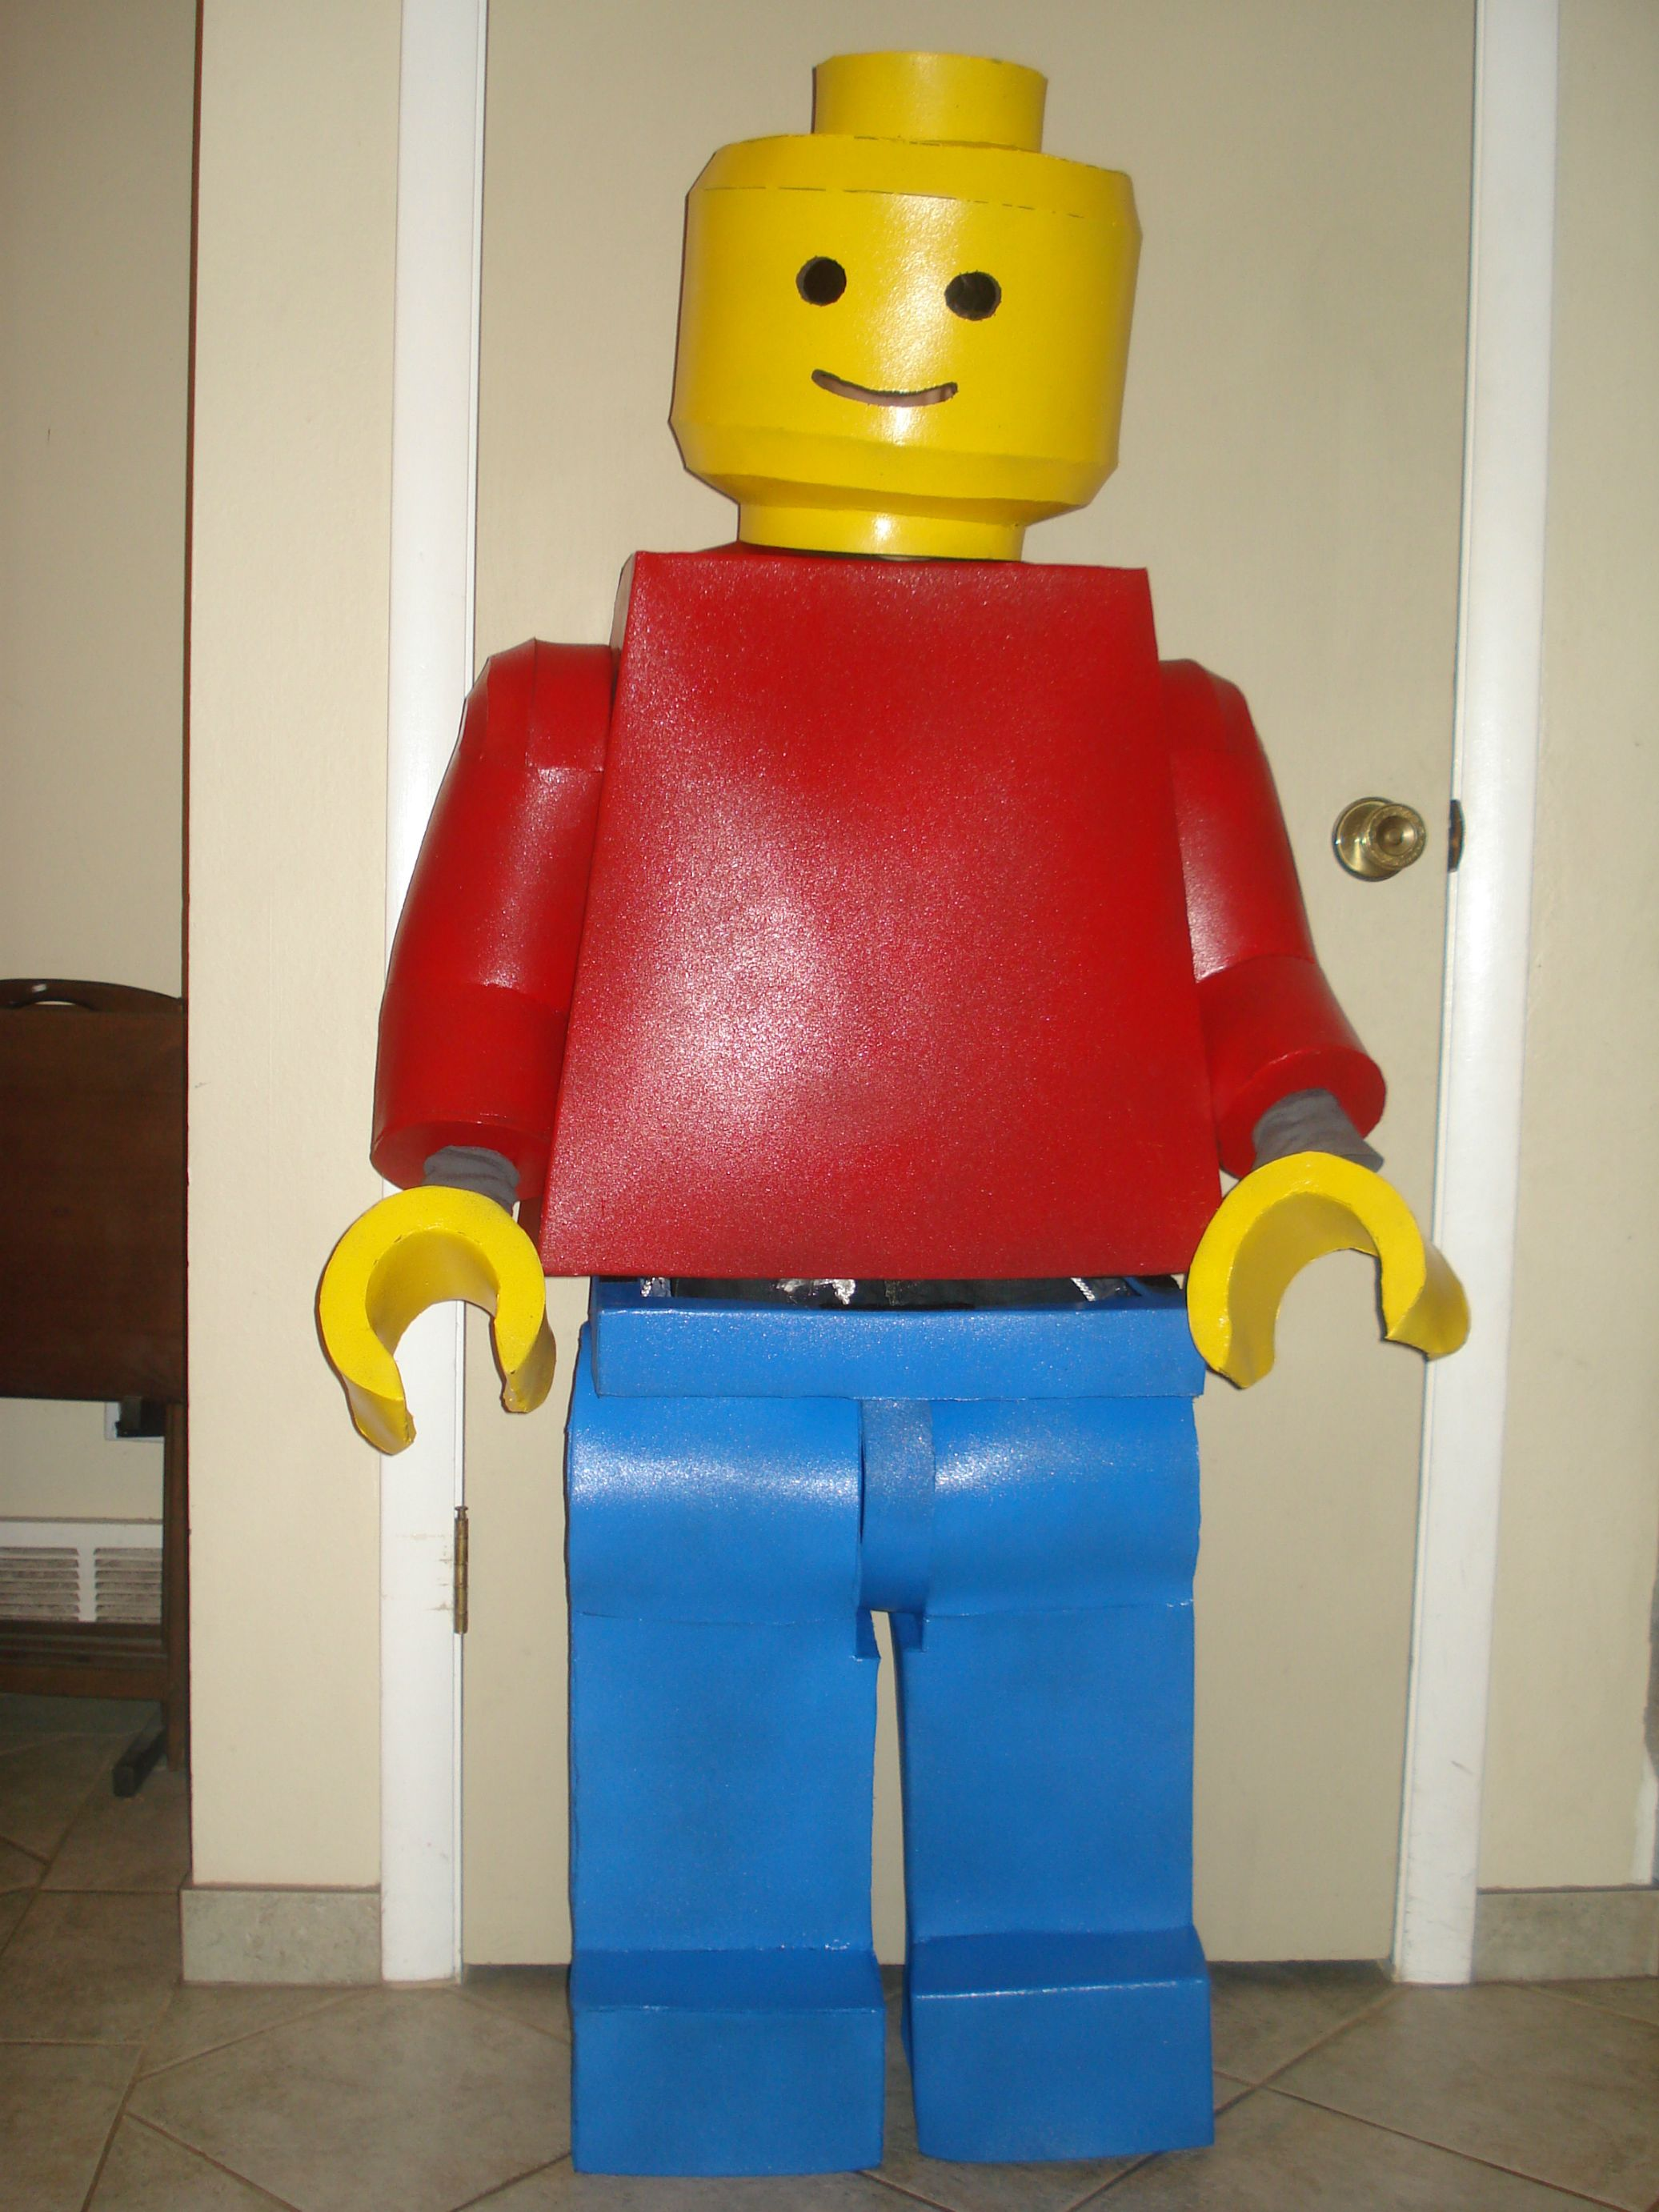 Lego Man Halloween Costume.Lego Man Costume Head I Found A Google Image Of An Iron